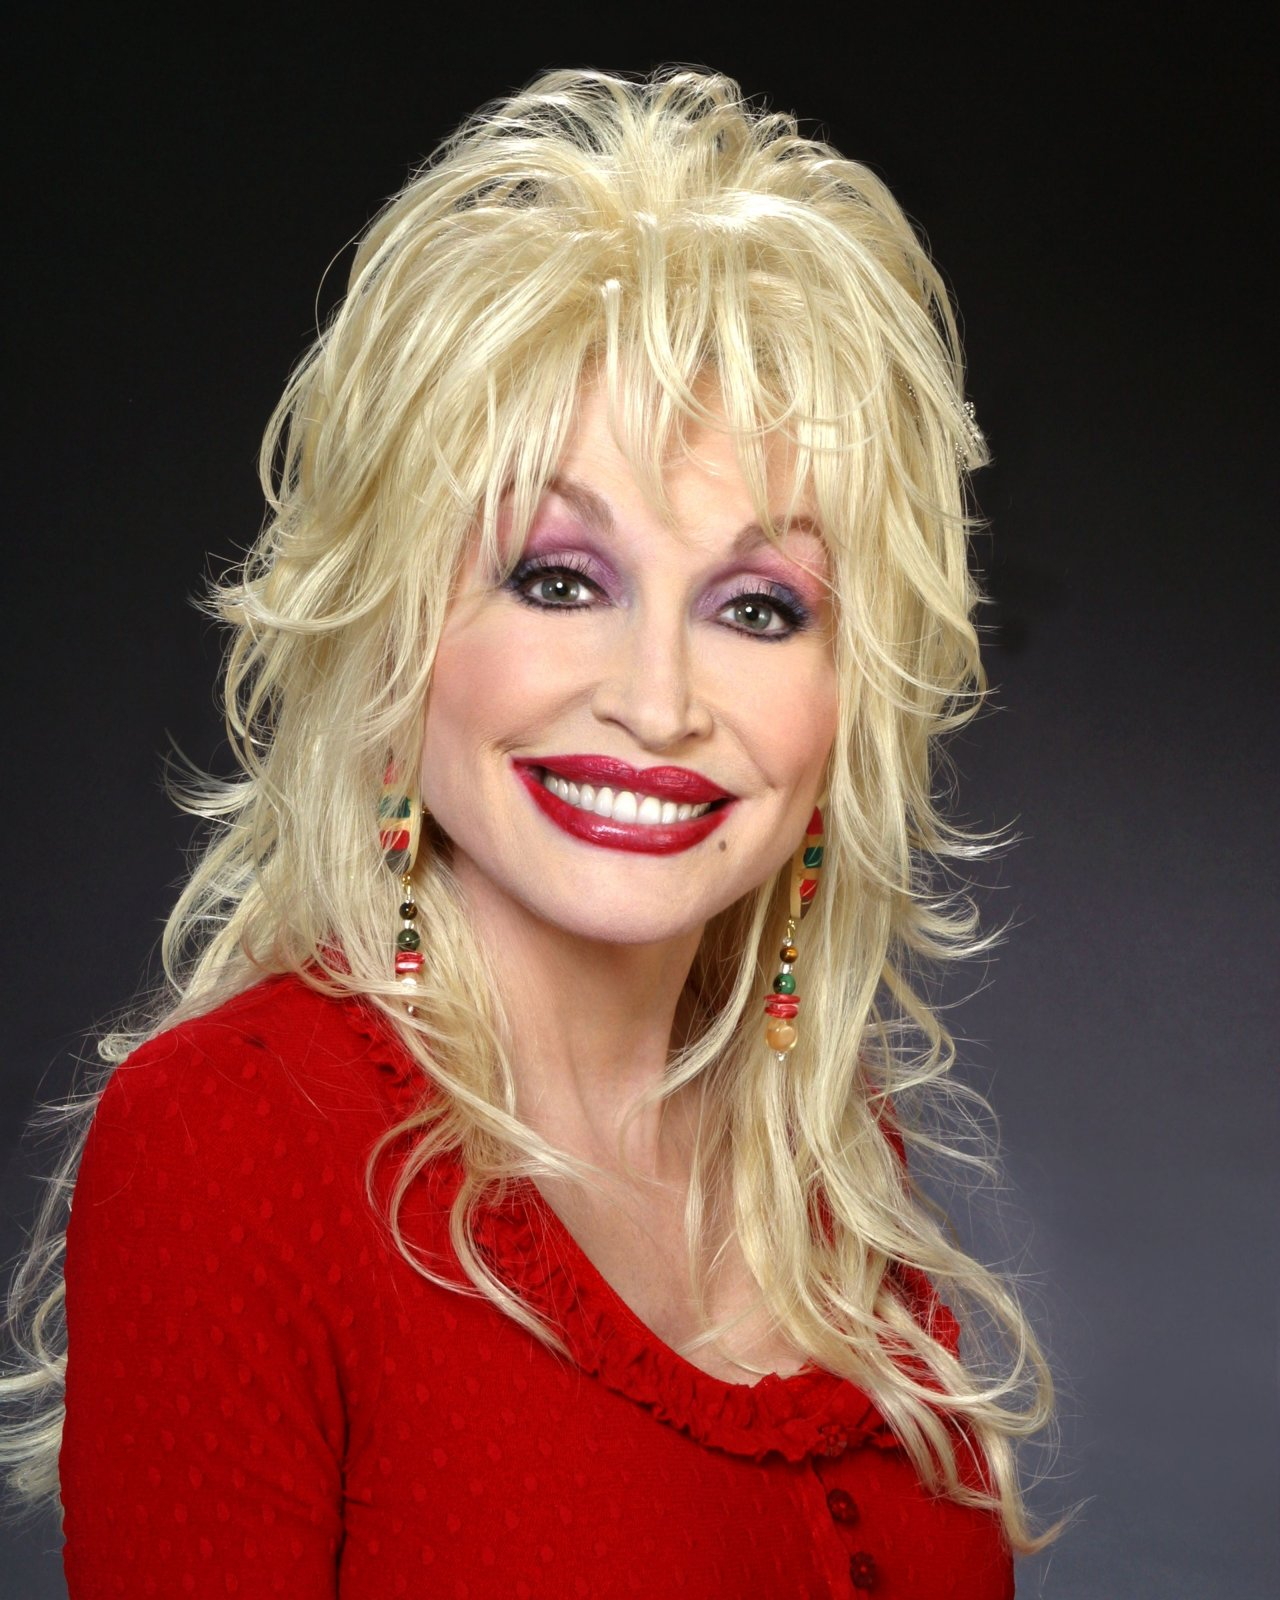 dolly parton jolene текст